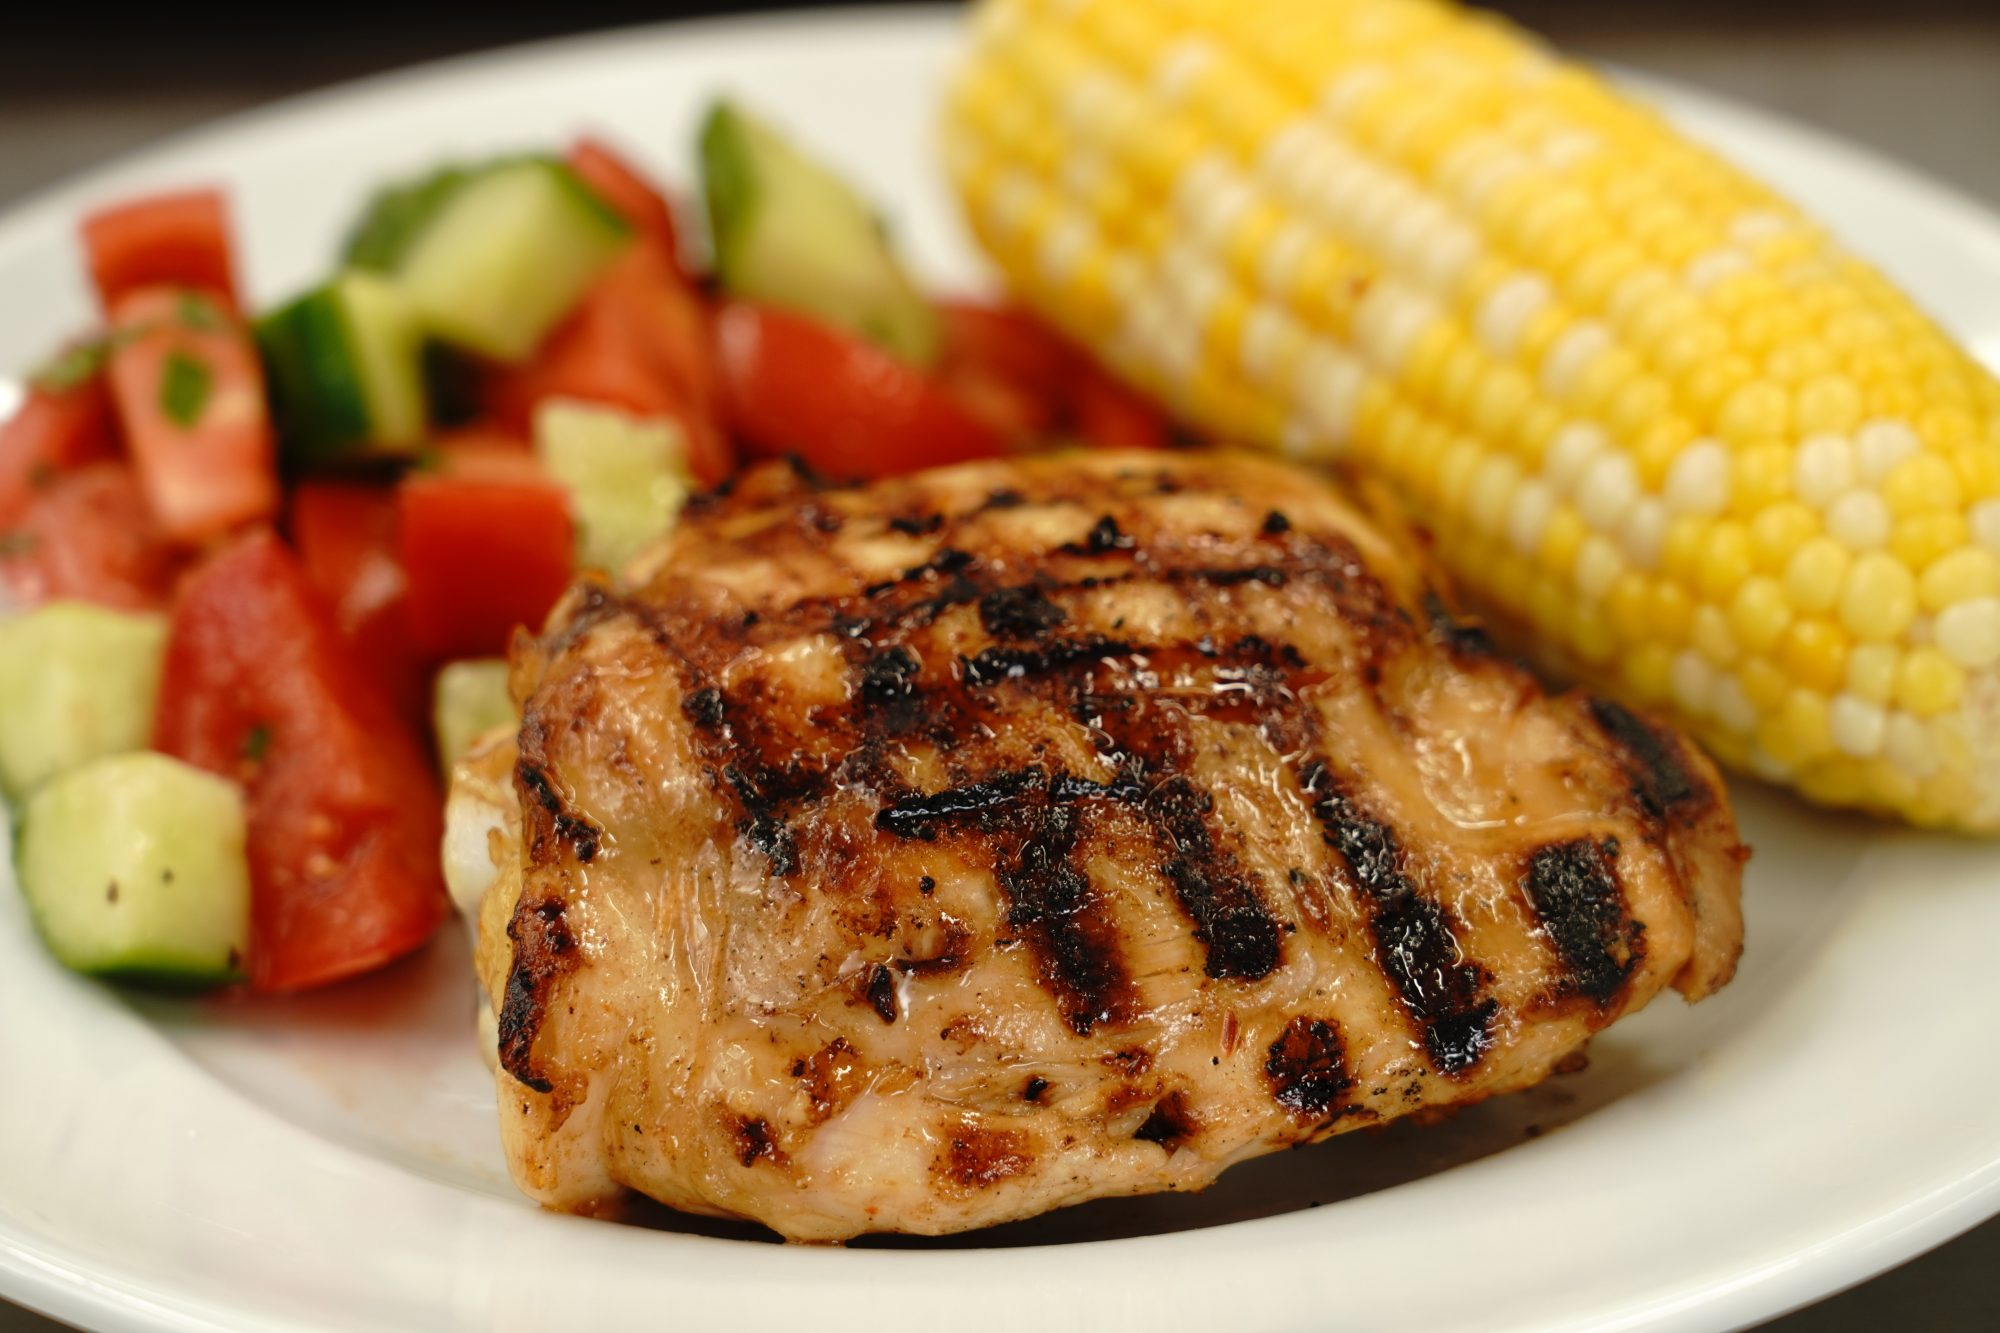 grilled rusty chicken thighs recipe served with corn and tomato cucumber salad